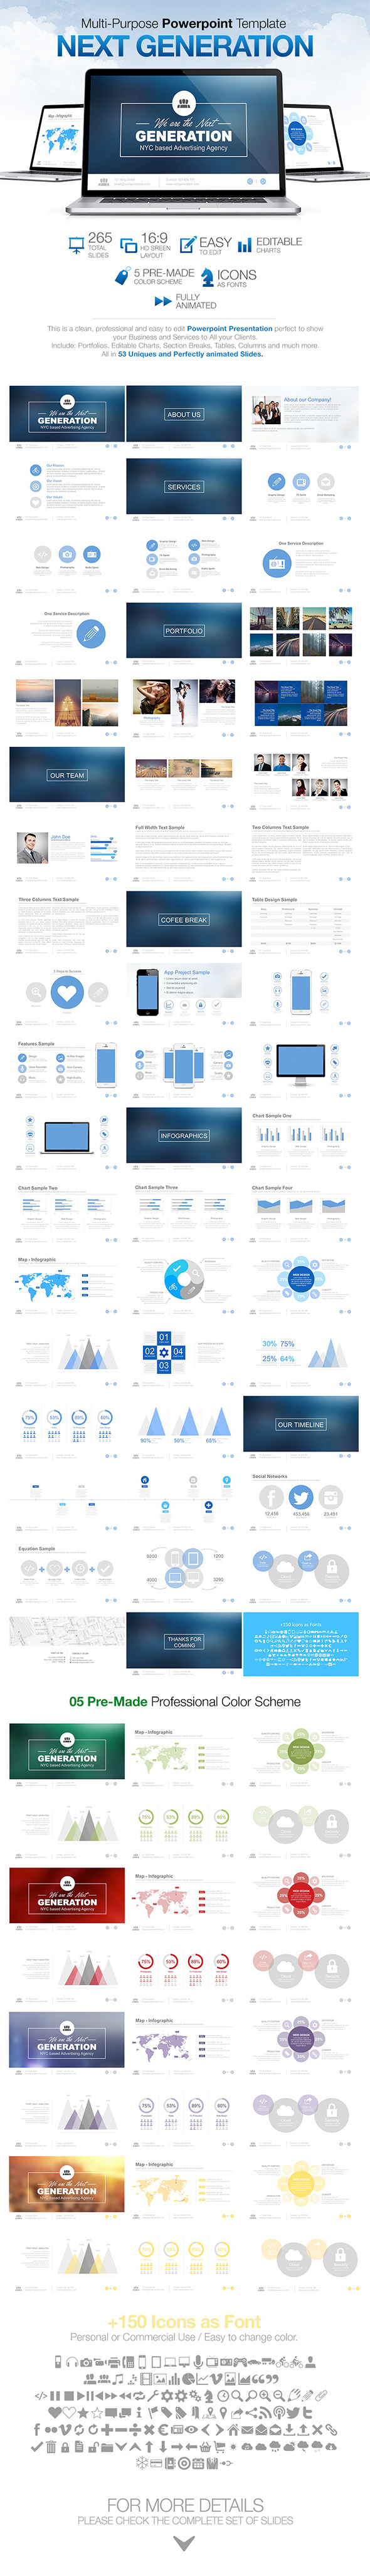 Next Generation - Powerpoint - Powerpoint Templates Presentation Templates